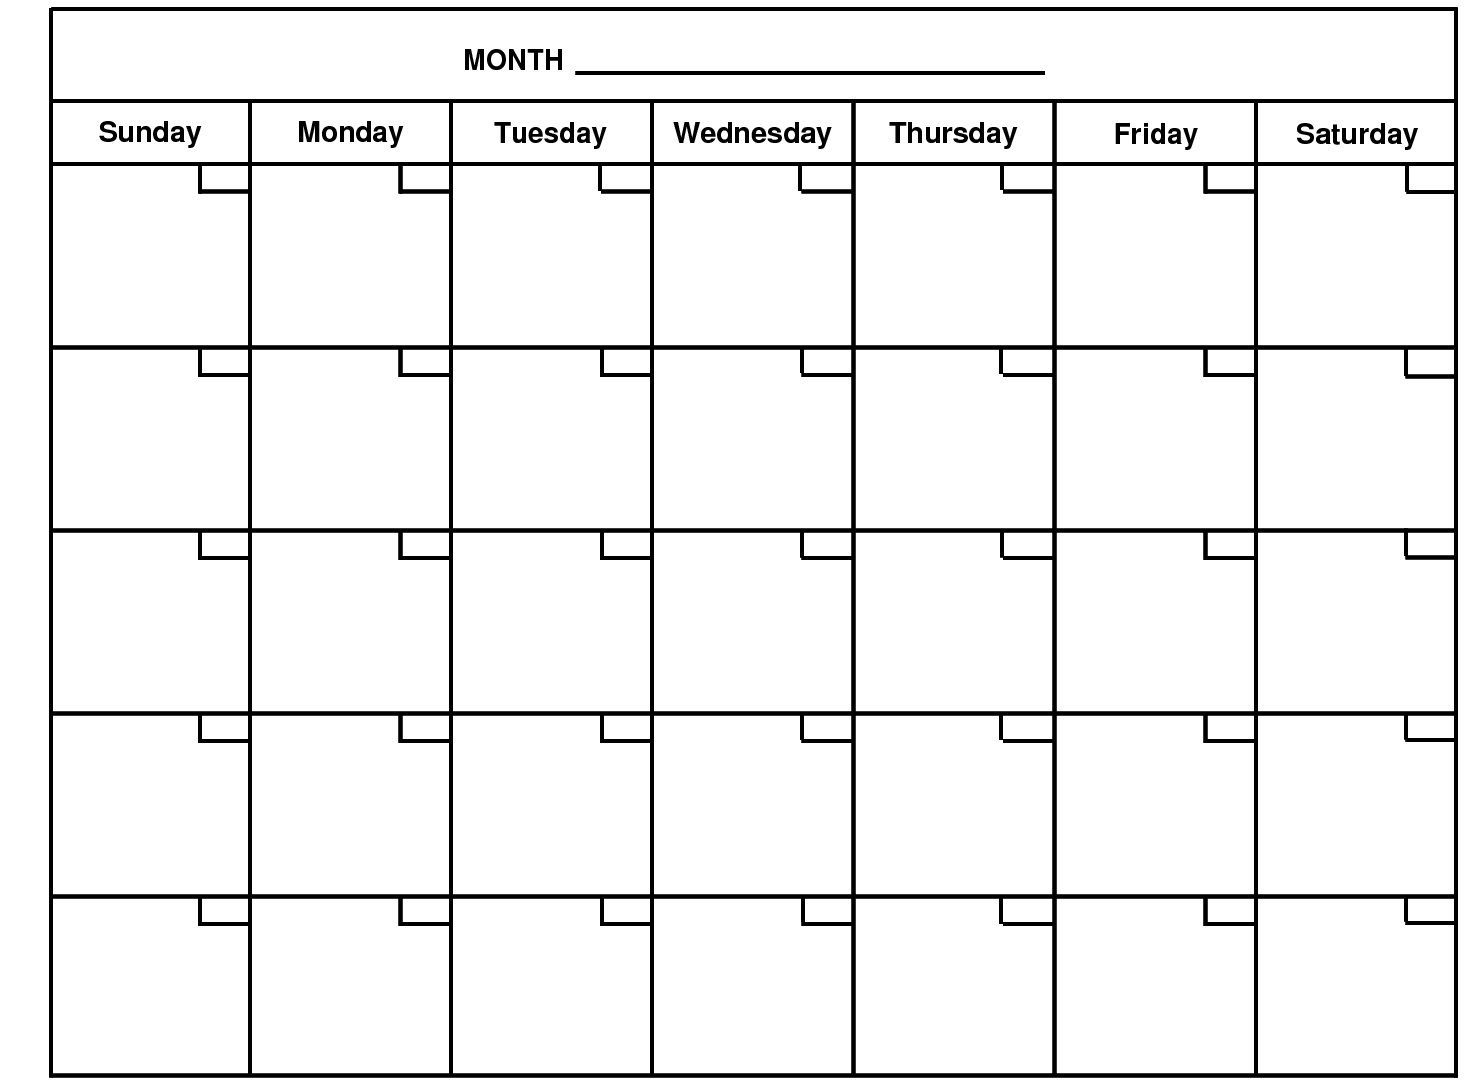 2020 Monthly Calendar Template Word - Google Search | Blank